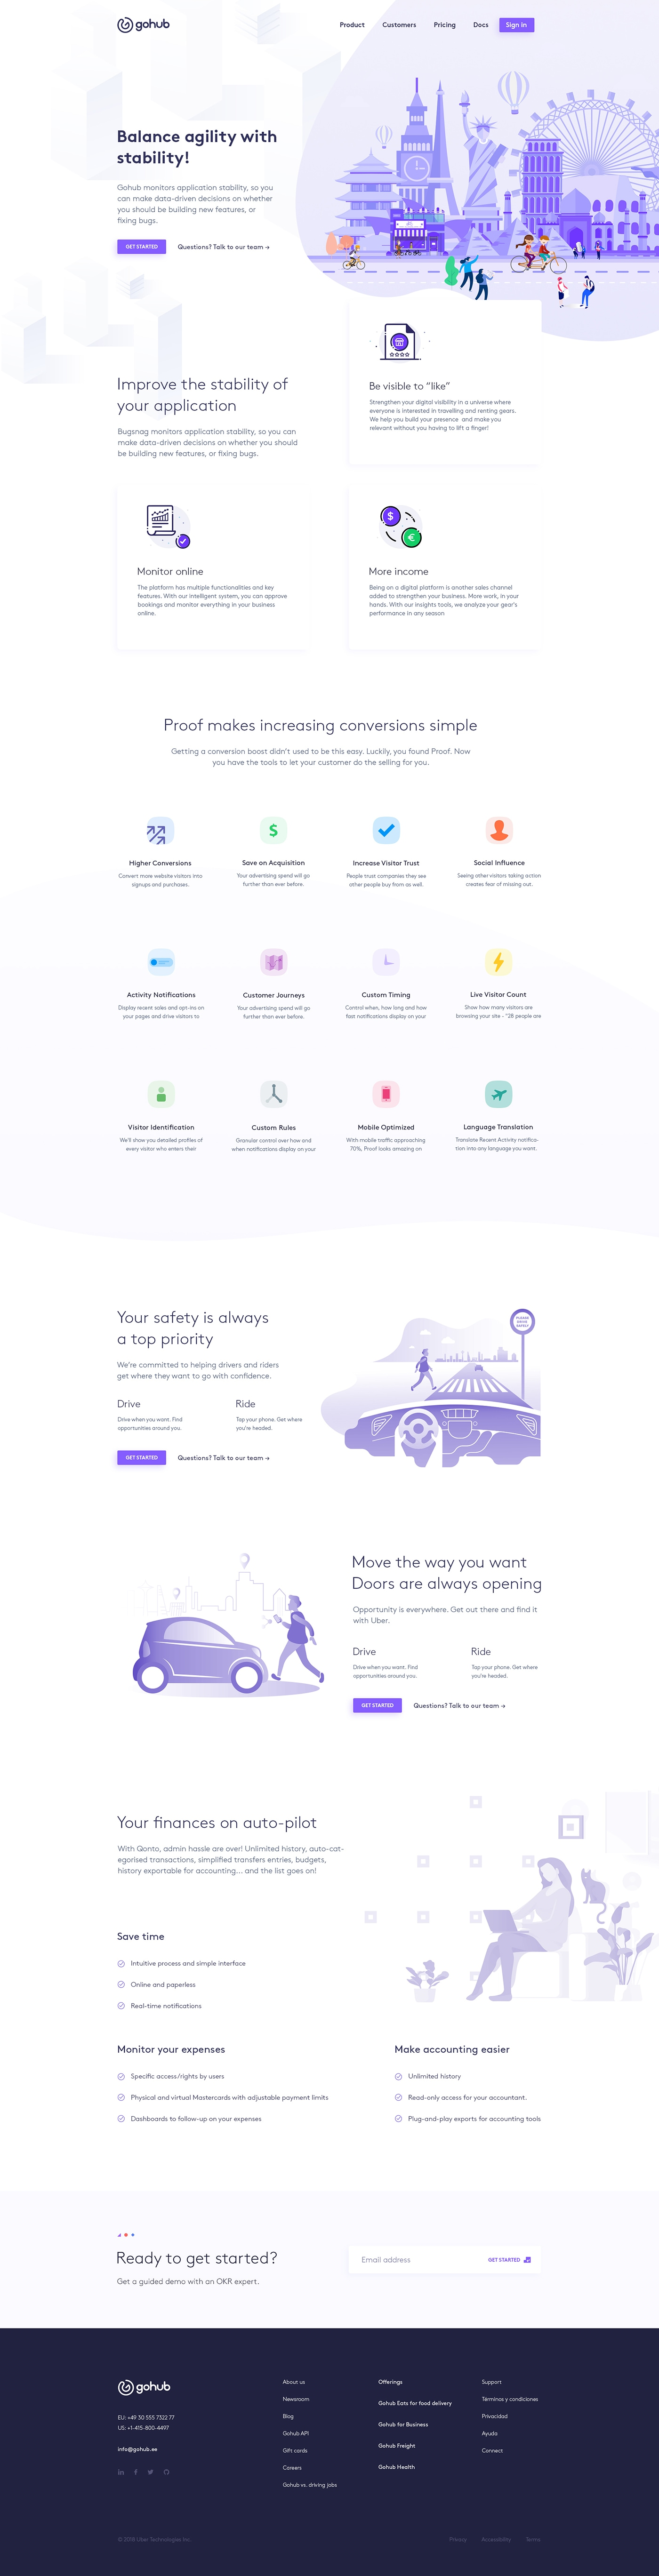 GoHub Landing Page - Elegant and clean landing page for your next project. All files are fully editable, layered, carefully organized